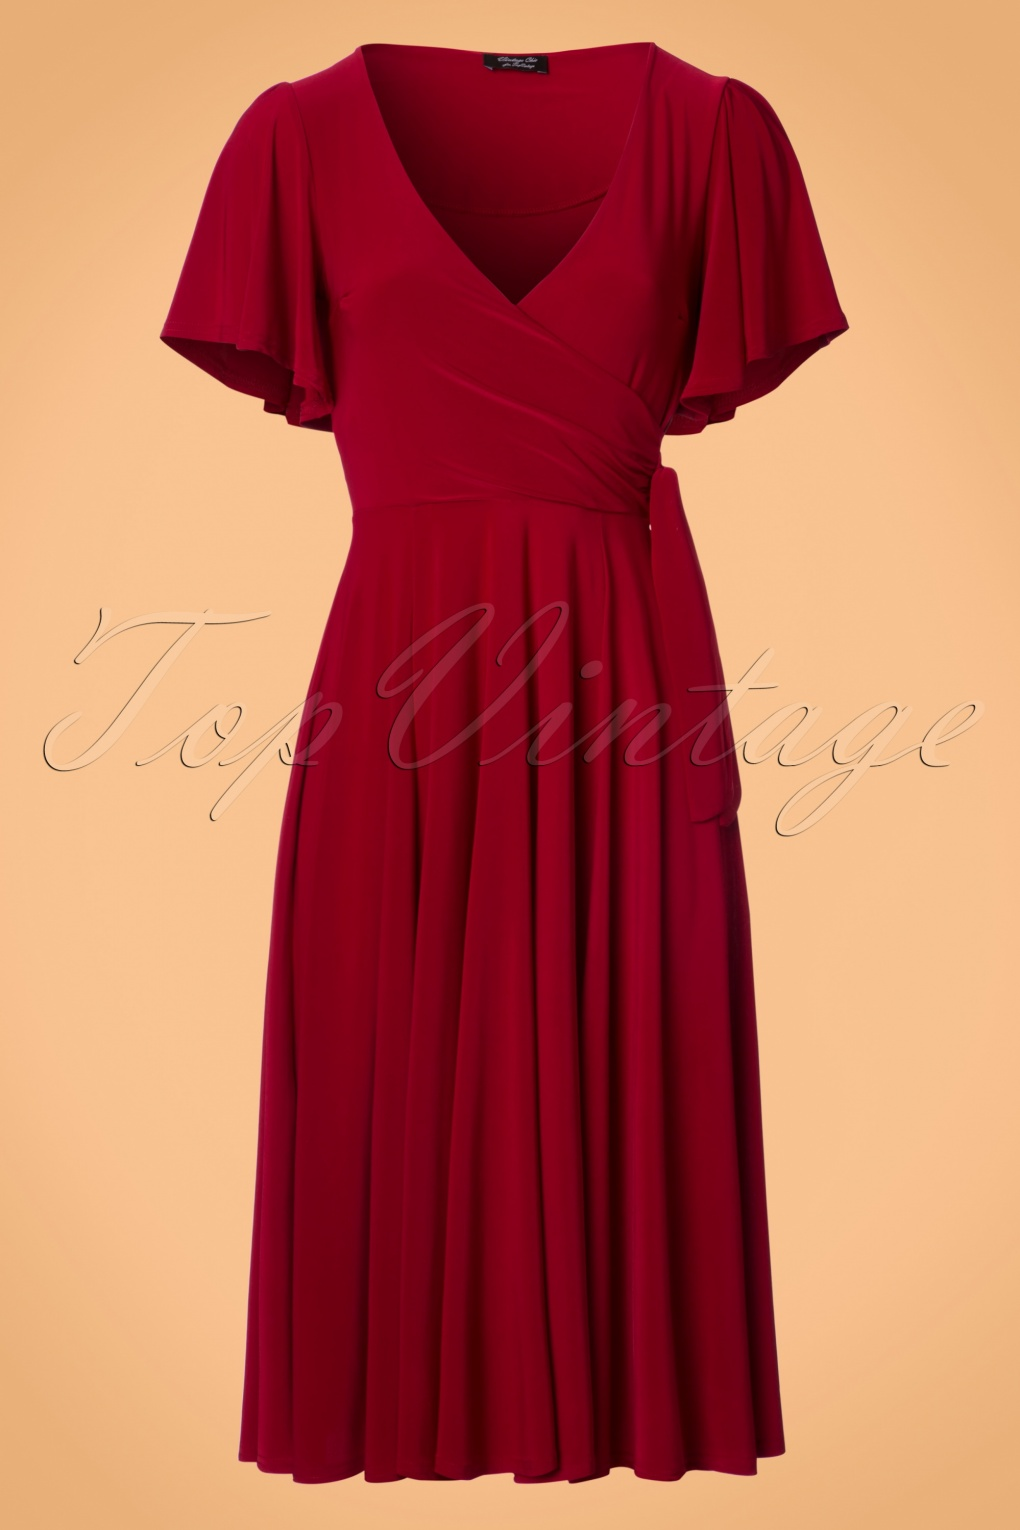 1940s Dresses and Clothing UK 40s Lara Cross Over Swing Dress in Red £54.36 AT vintagedancer.com